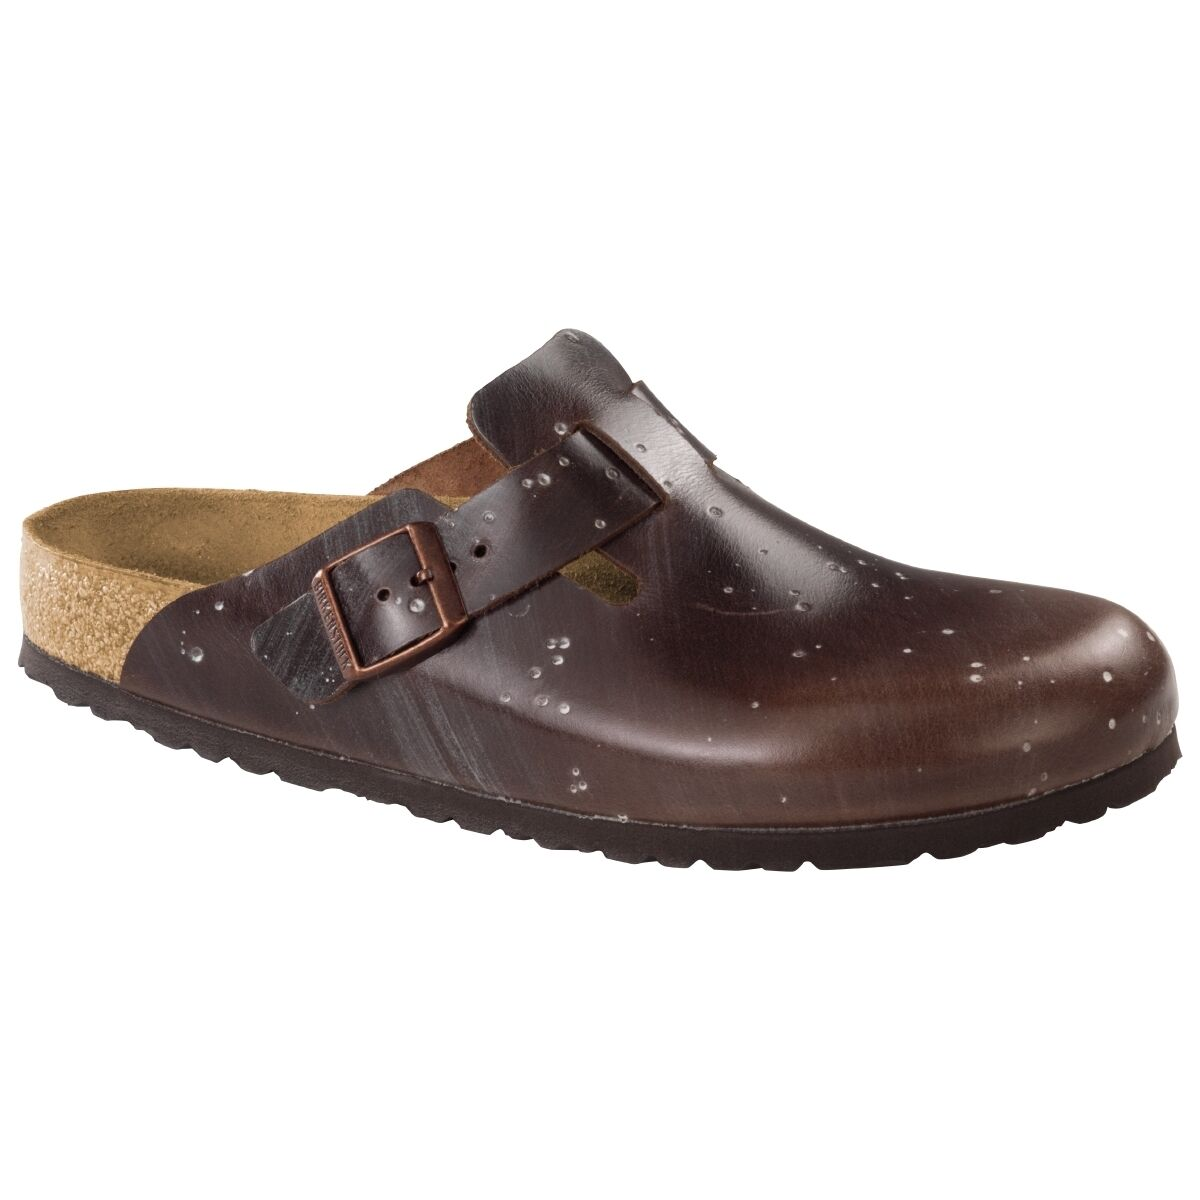 Birkenstock Boston brown Leder Clogs Schuhe Pantolette Clog brown Boston Weite schmal 1006581 2ac1da